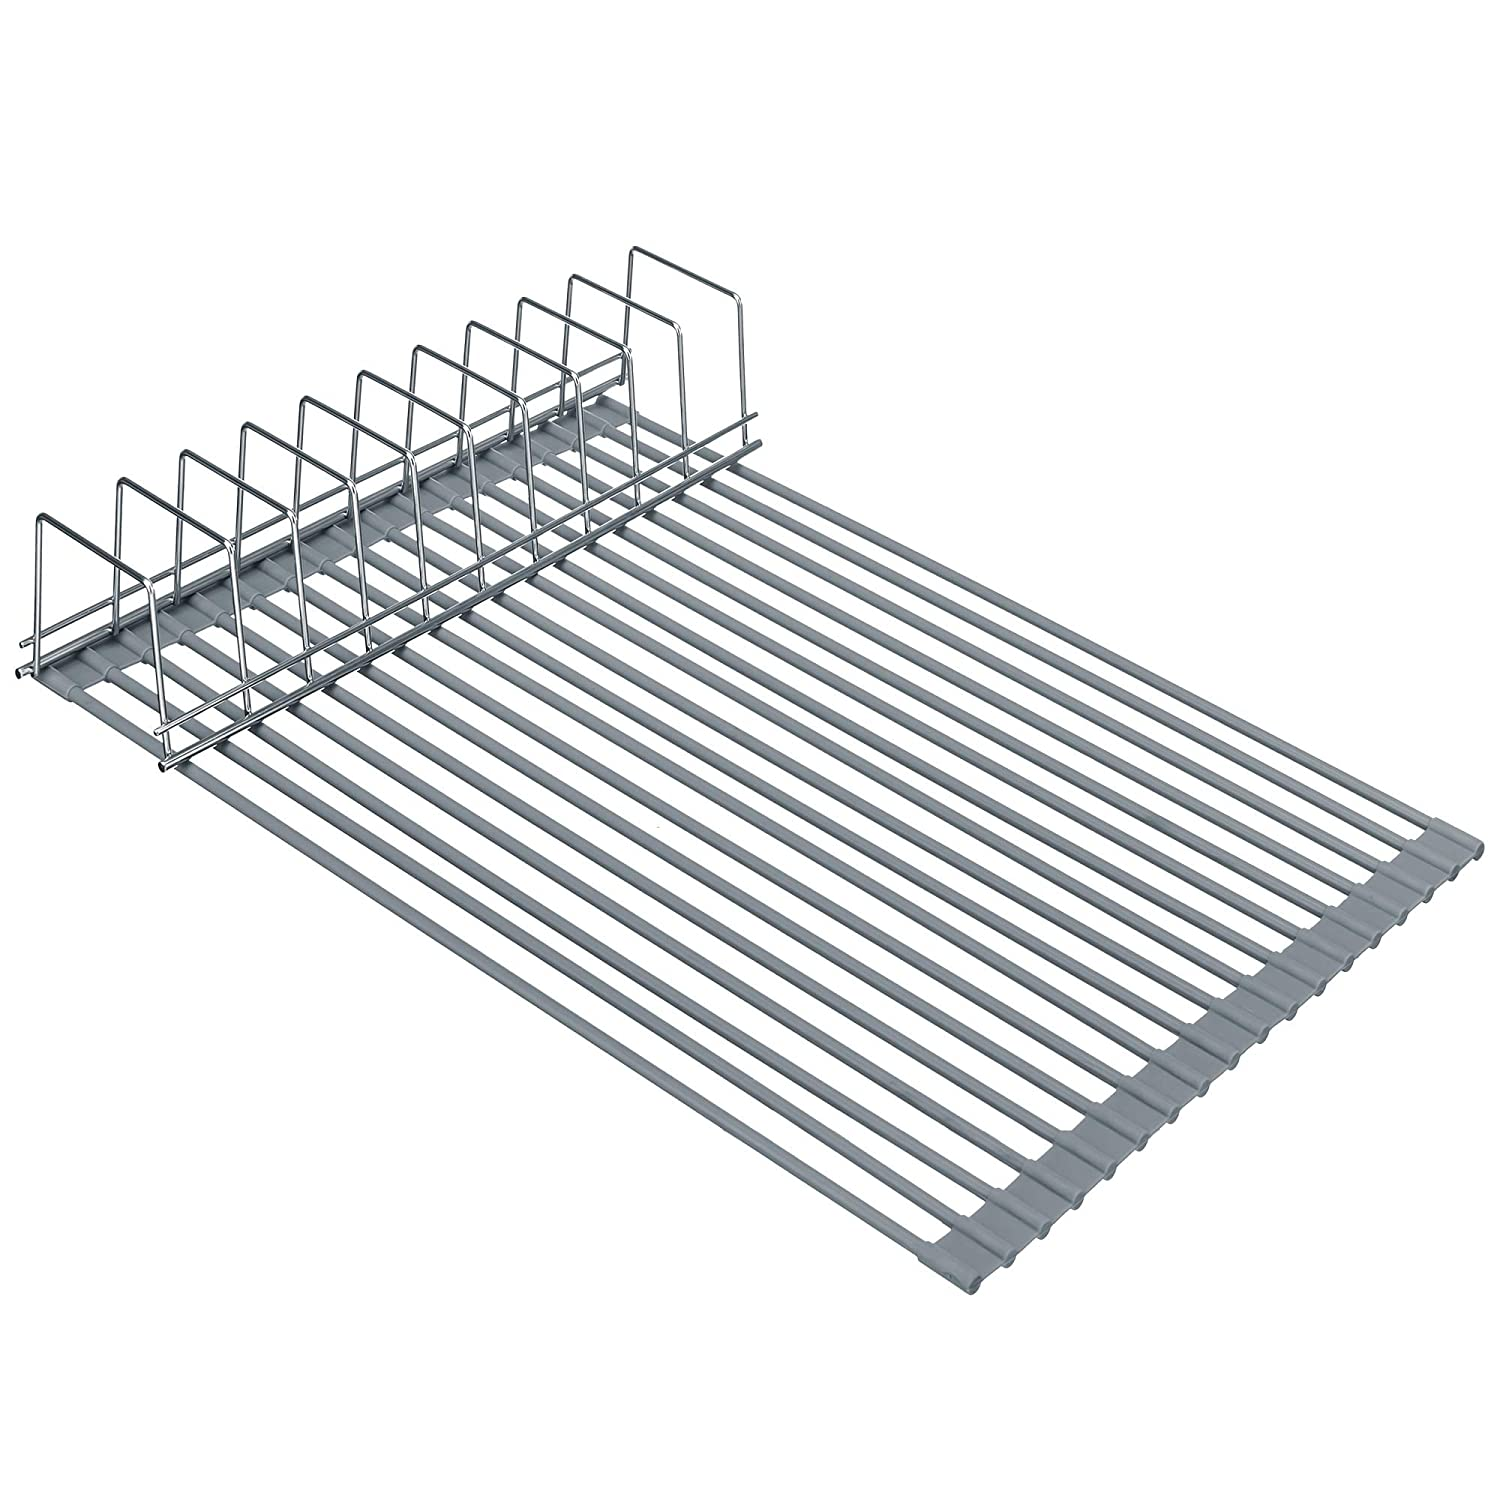 MONOKIT Over Sink Dish Drying Rack Roll Up Large 20.47 Inch, Kitchen Sink Drainer Rack for Cups Fruits Vegetables